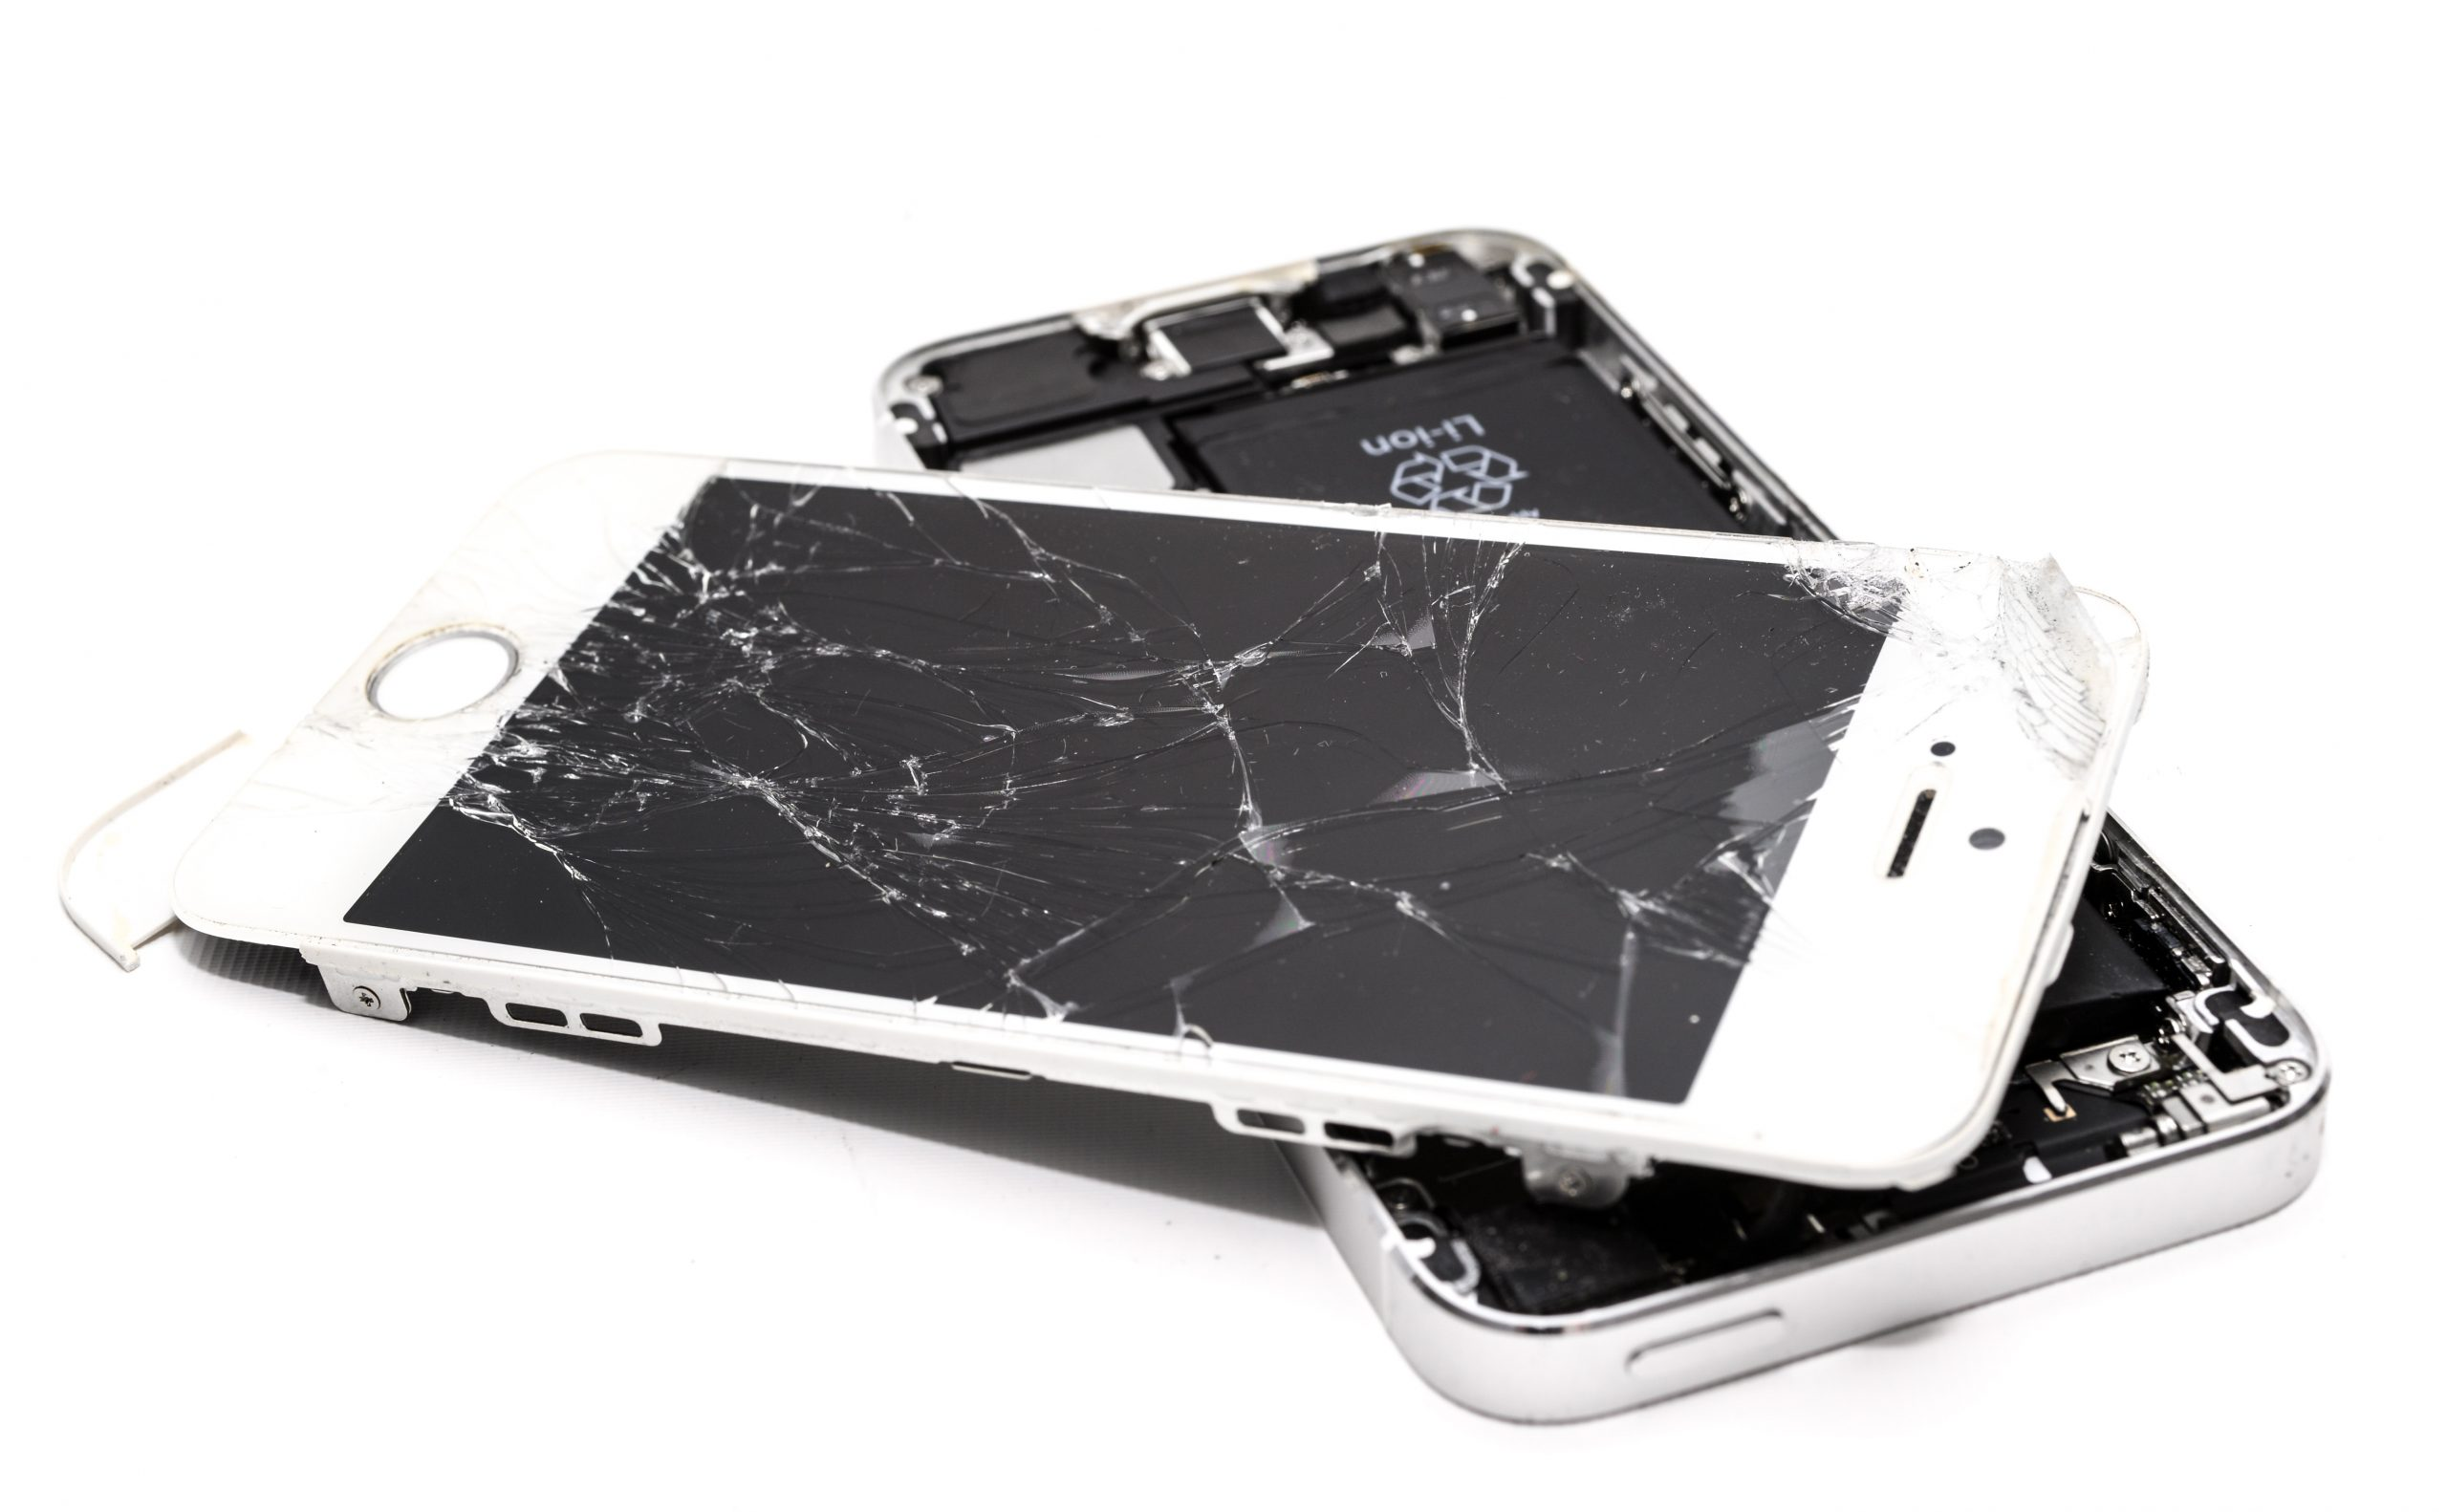 How long does it take to repair an iPhone screen?